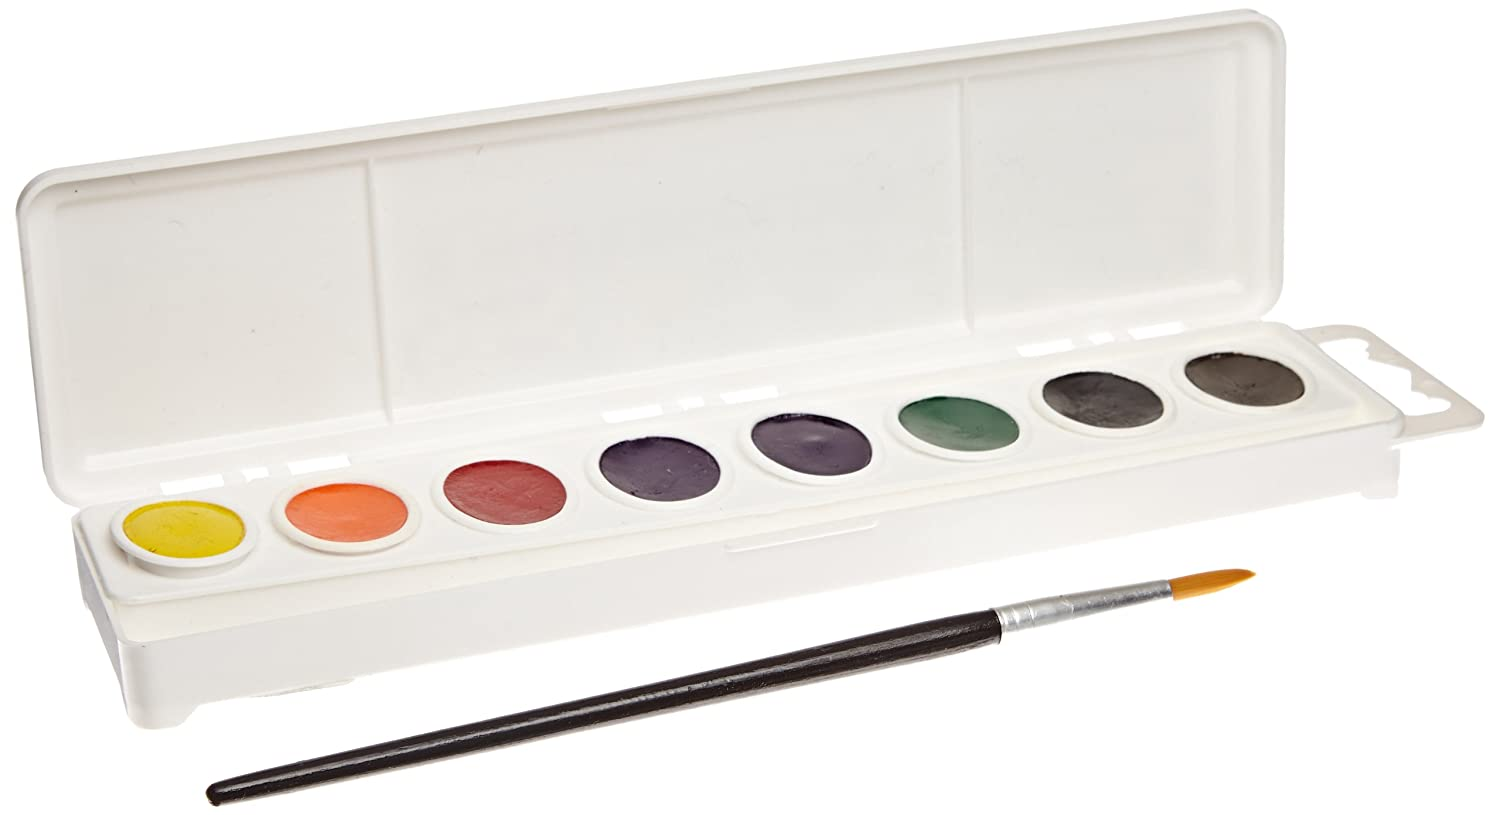 Sax True Flow 8 Color Oval Pan Watercolor Paint Set with Brush - Assorted Colors